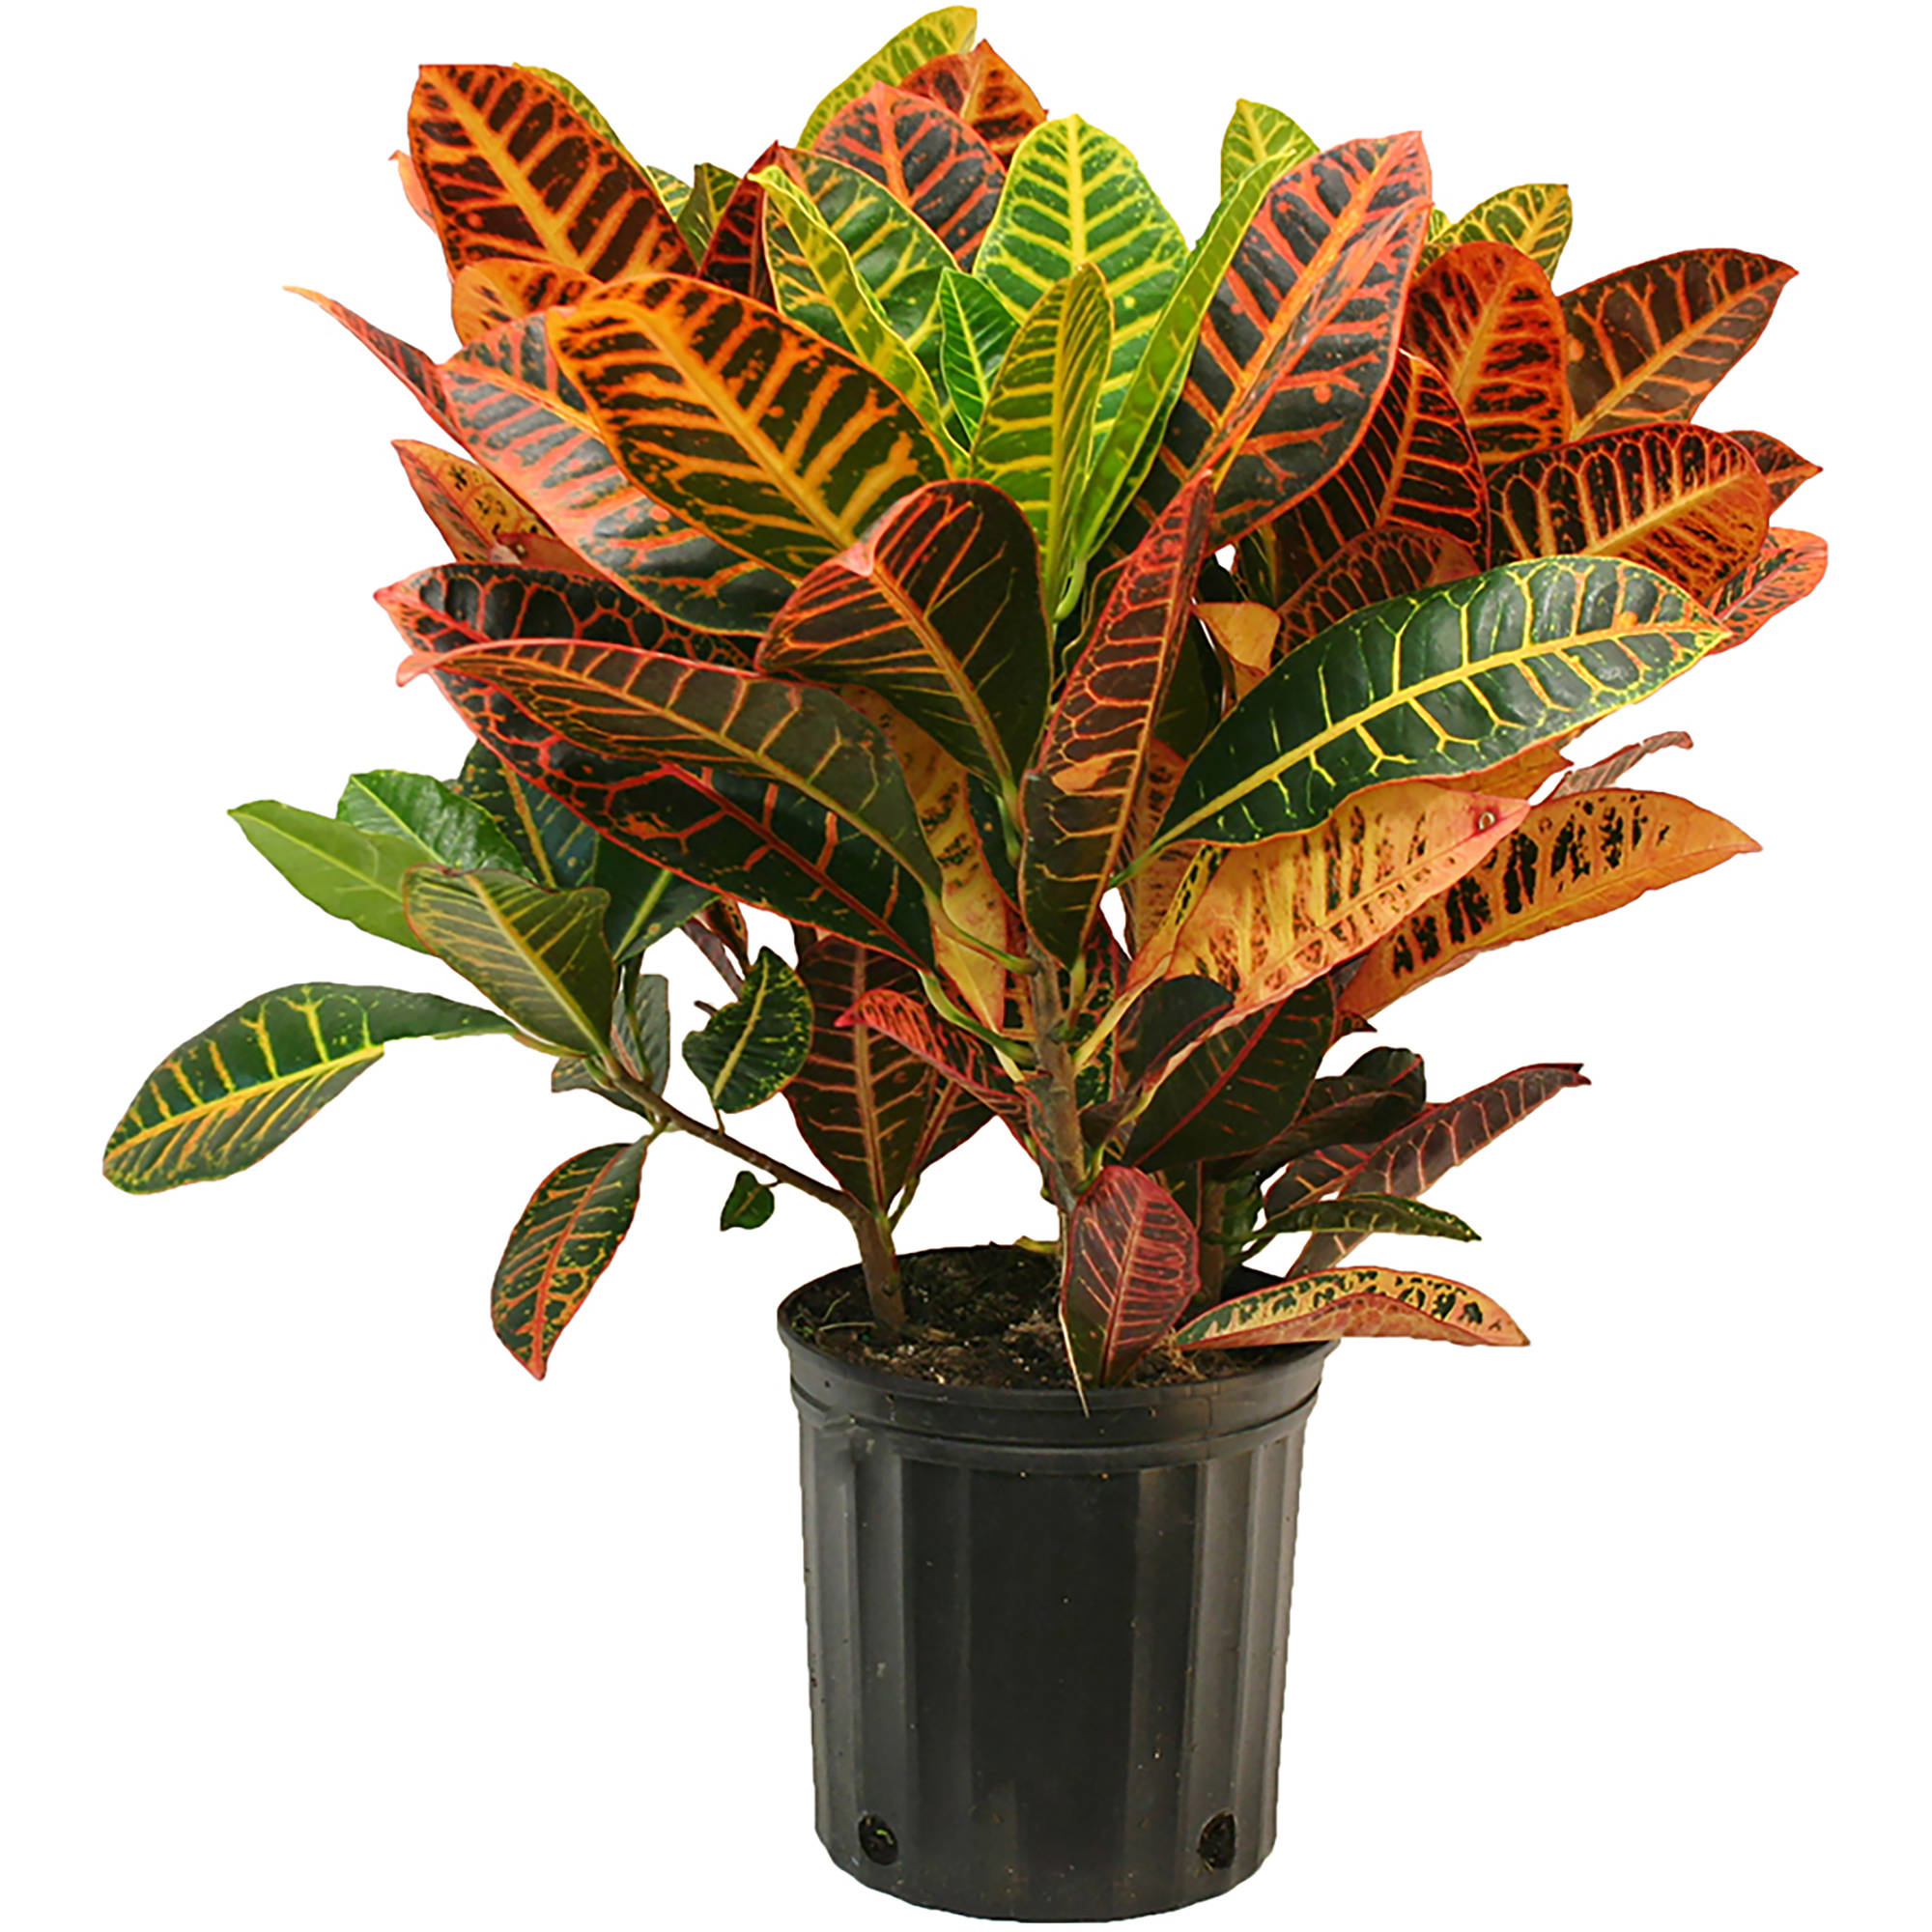 Delray Plants Croton (Codiaeum) Petra Easy to Grow Live House Plant, 10-inch Grower Pot